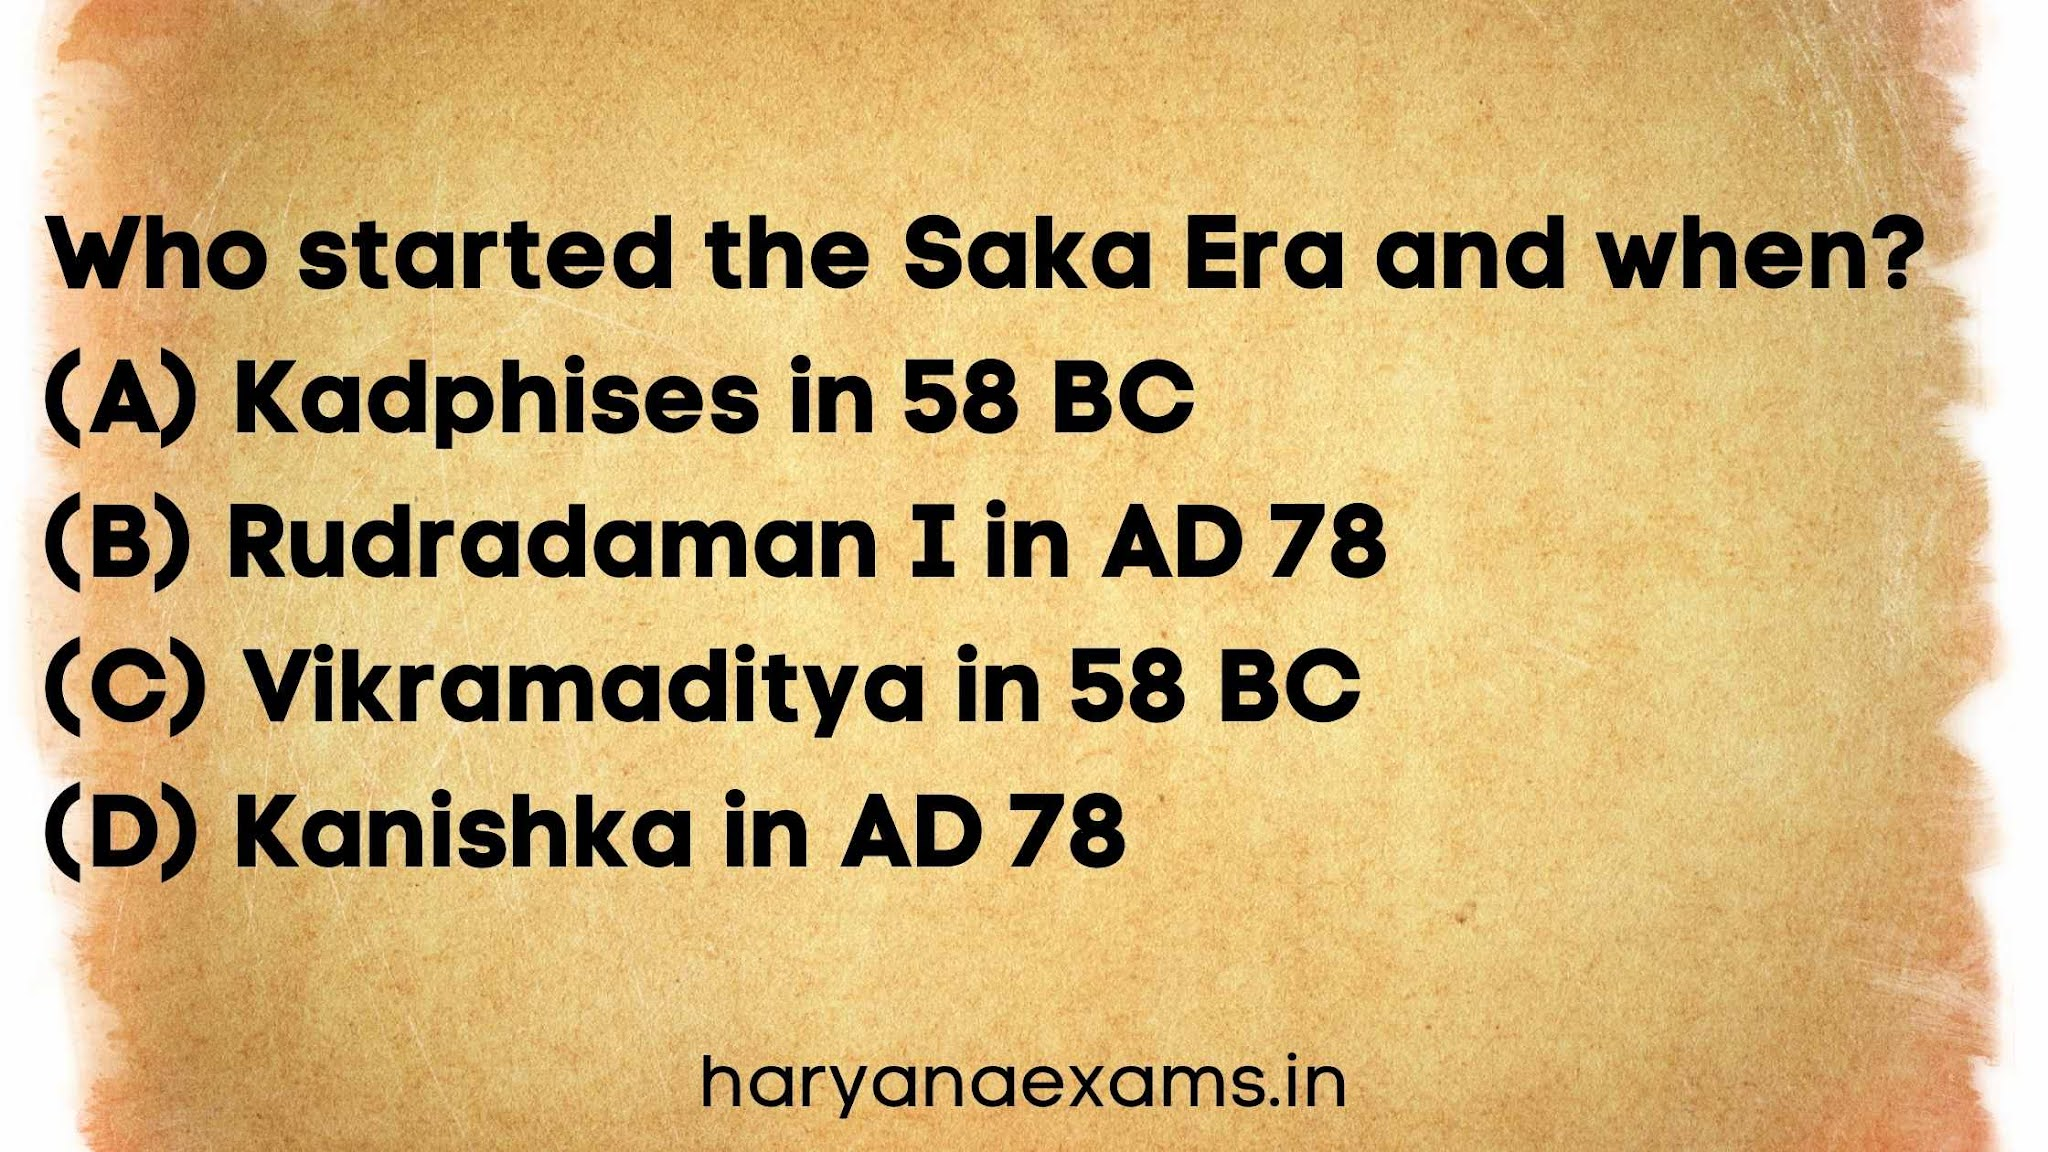 Who started the Saka Era and when?   (A) Kadphises in 58 BC   (B) Rudradaman I in AD 78   (C) Vikramaditya in 58 BC   (D) Kanishka in AD 78